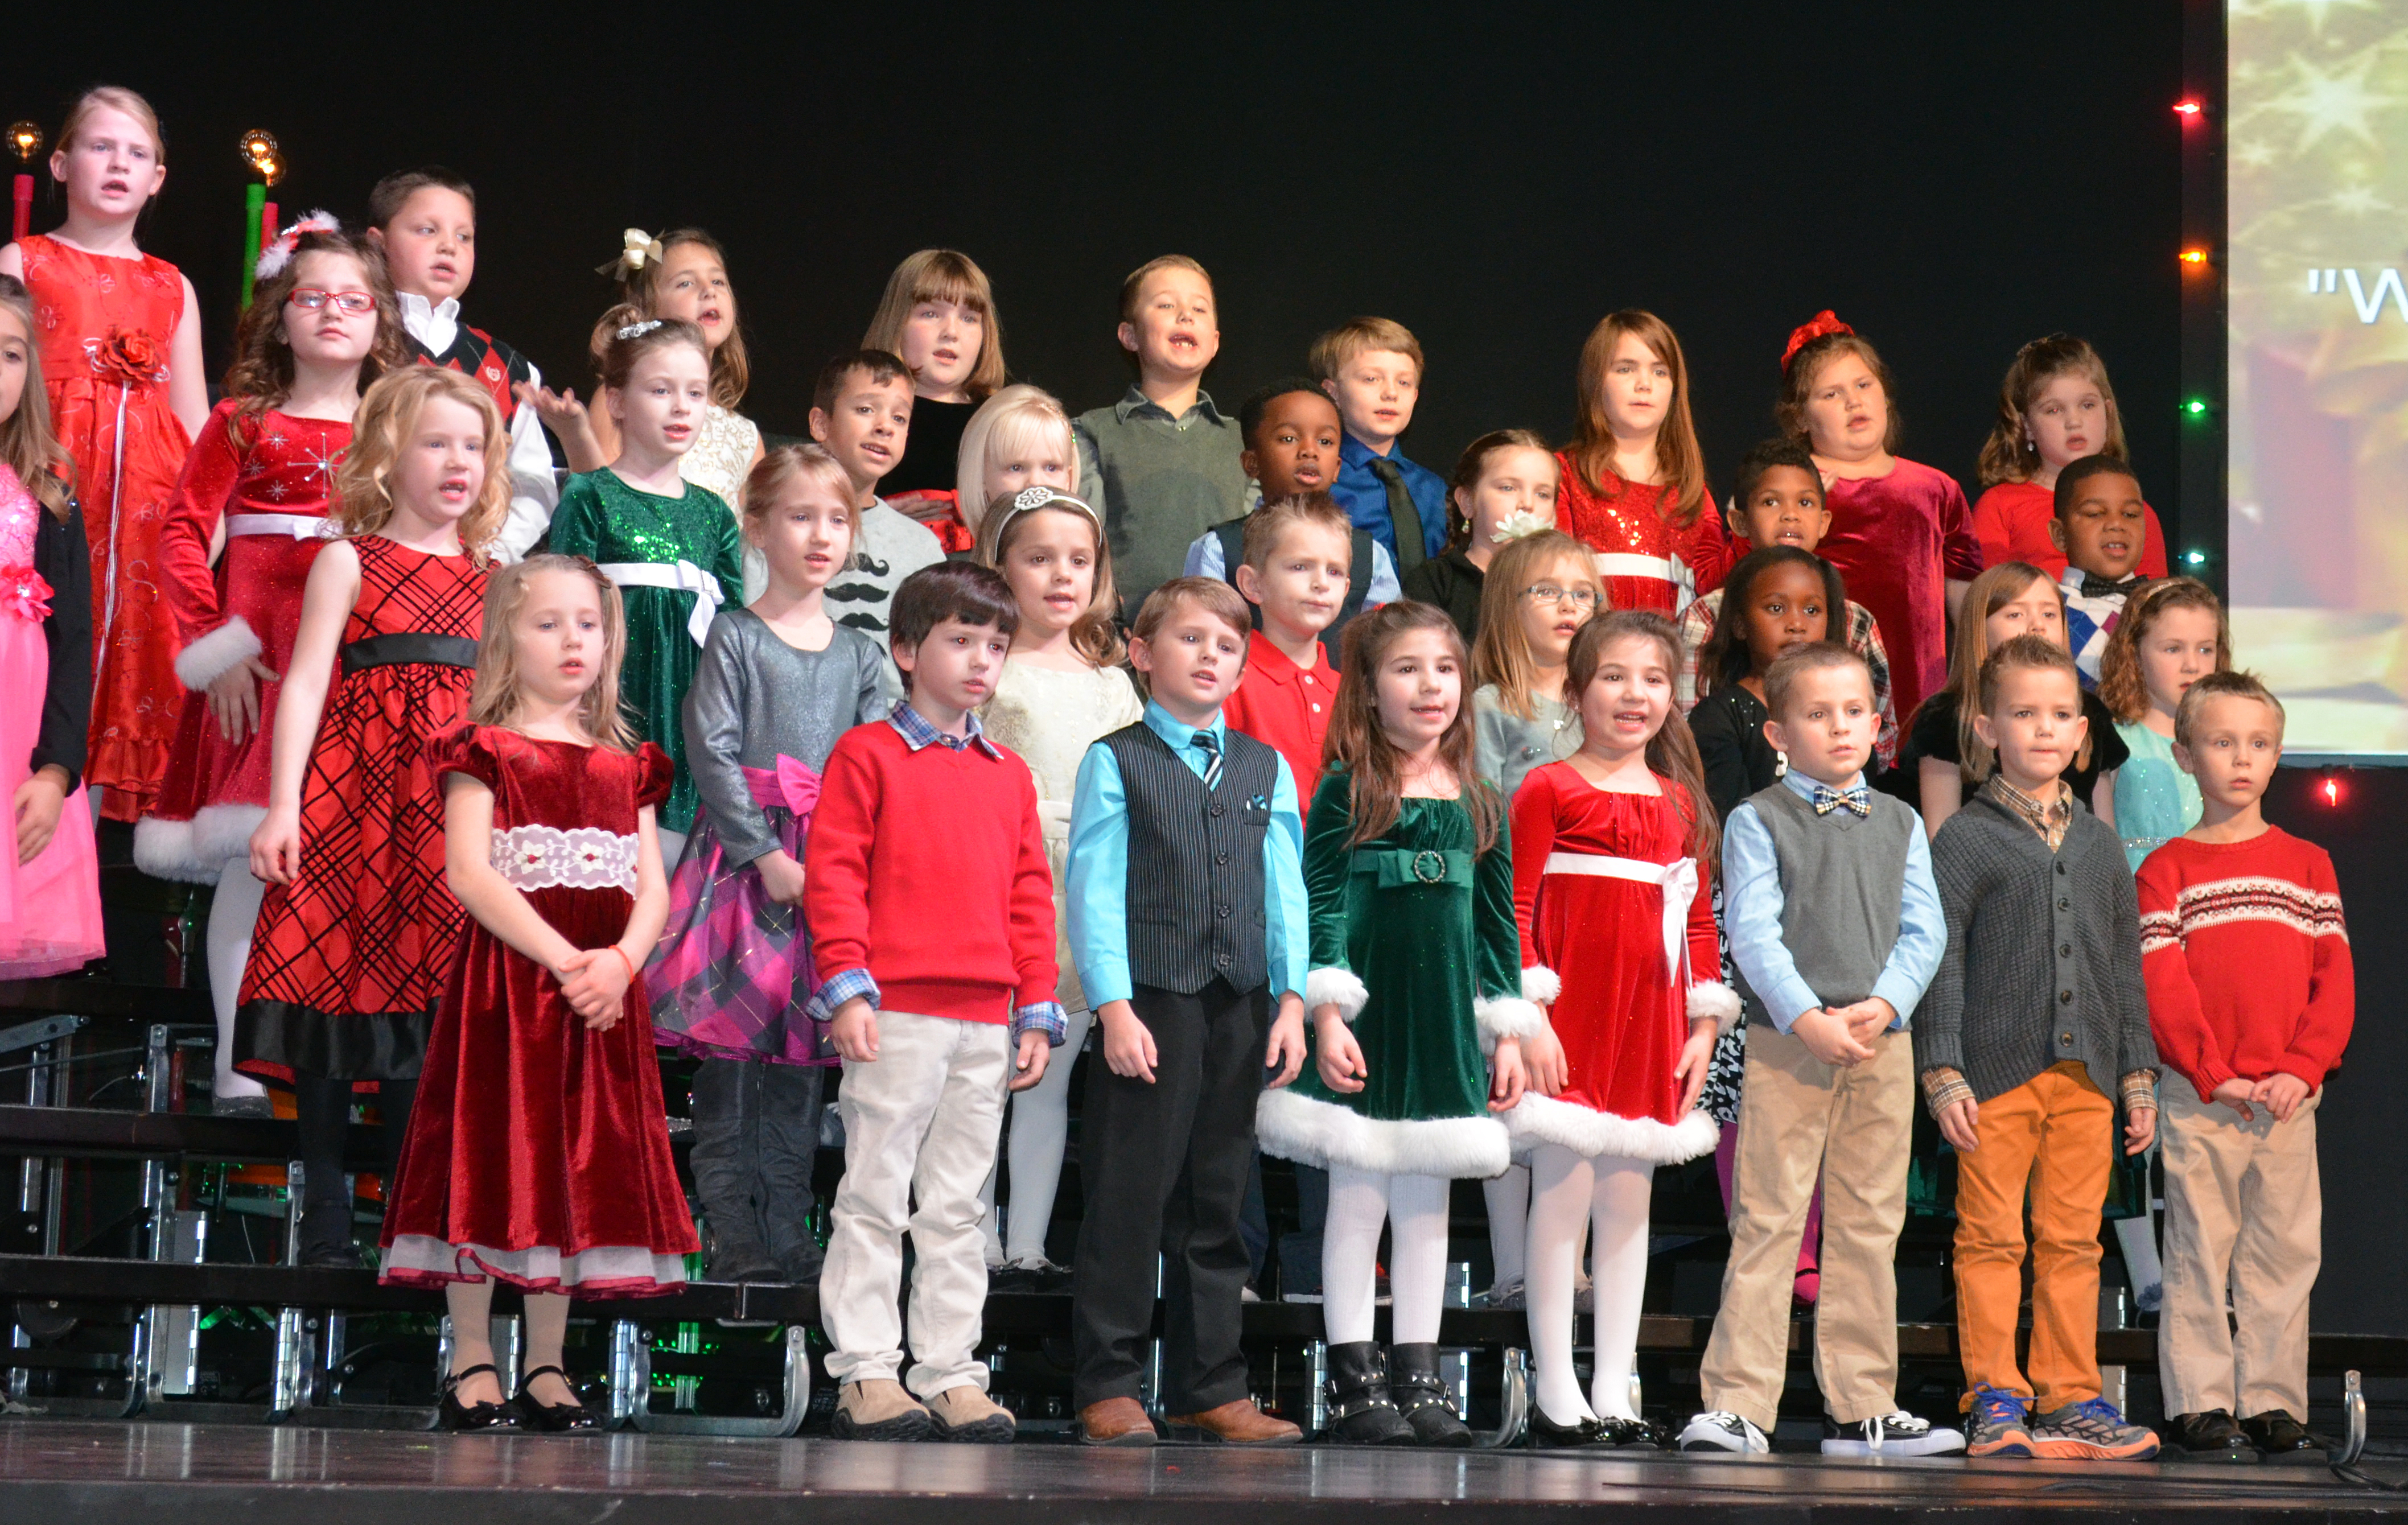 Rejoice Christian Schools' First Grade Students Spread Christmas Cheer at their Program Dec 16th